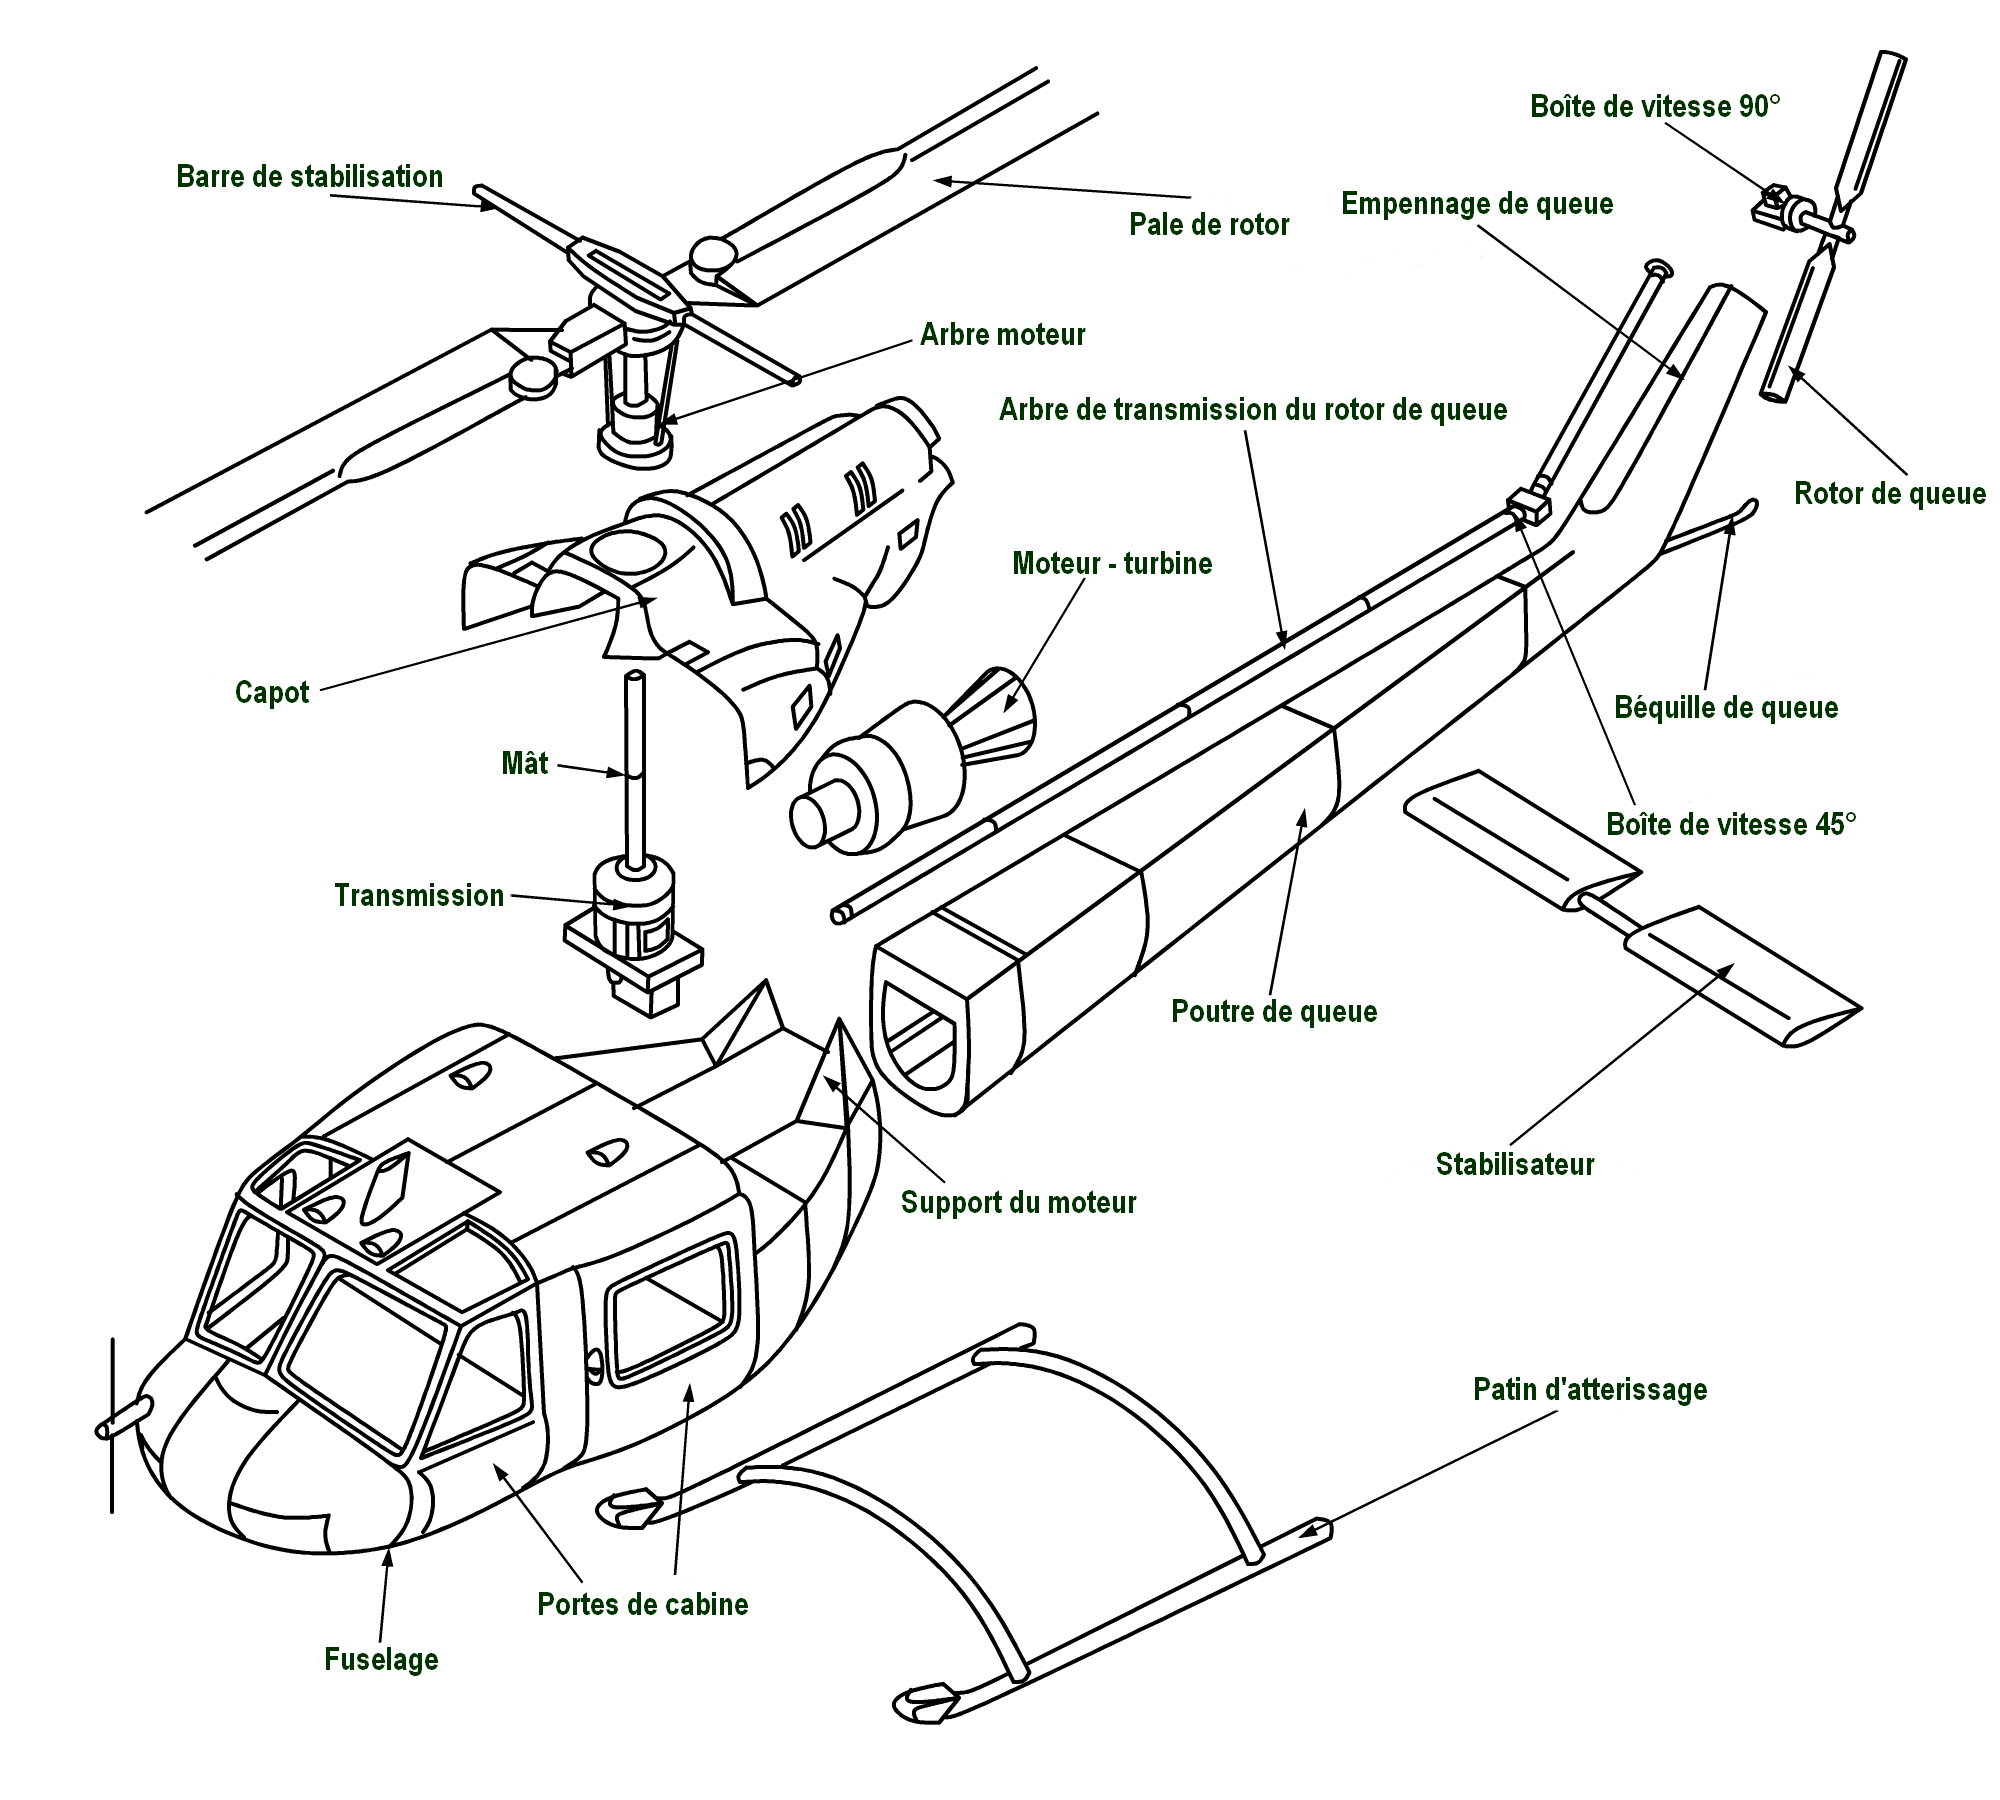 helicopter controls explained with 801026 on Diagram Of Hydraulic Excavator Hydraulic System also Porsche 911 Gt3 R Hybrid Steering Wheel further CrushCardVirusSJCS EN UR LE1 as well Figure 17 6 Flight Control Systems 596 as well 2.